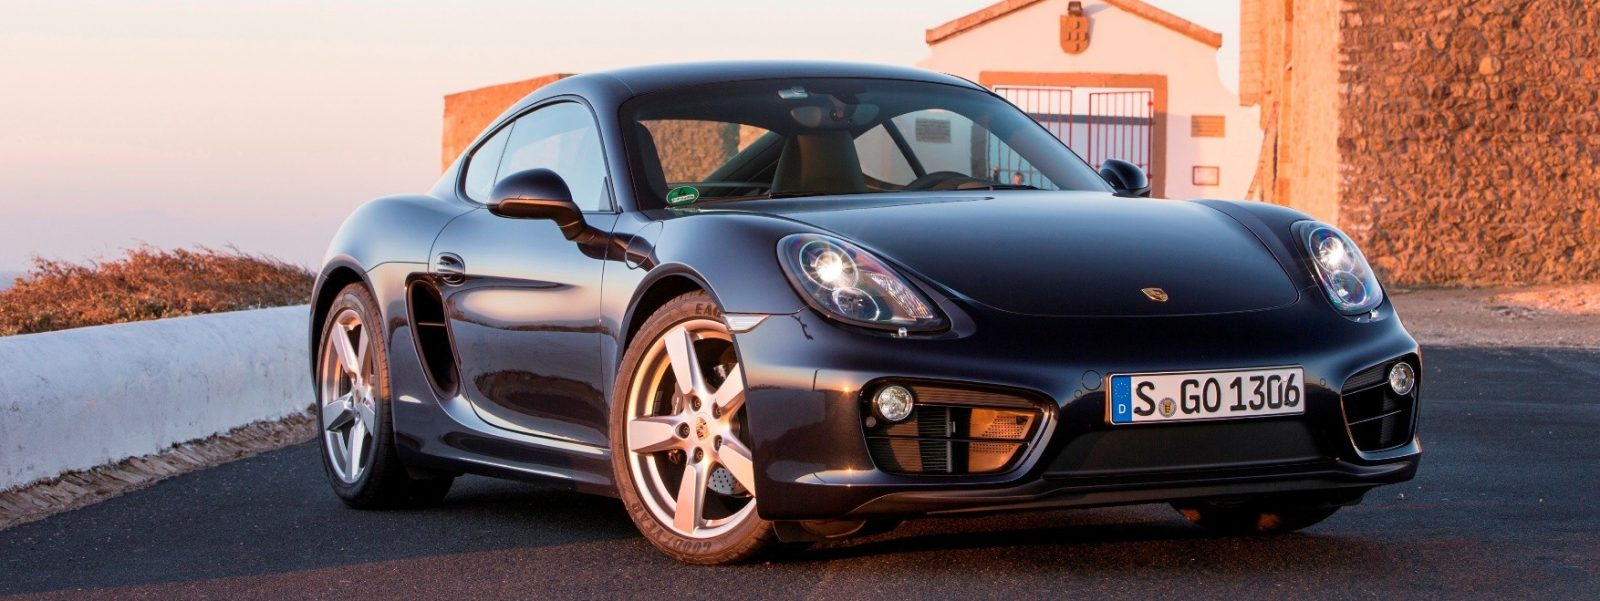 CarRevsDaily - Porsche CAYMAN Buyers Buide Photos 24